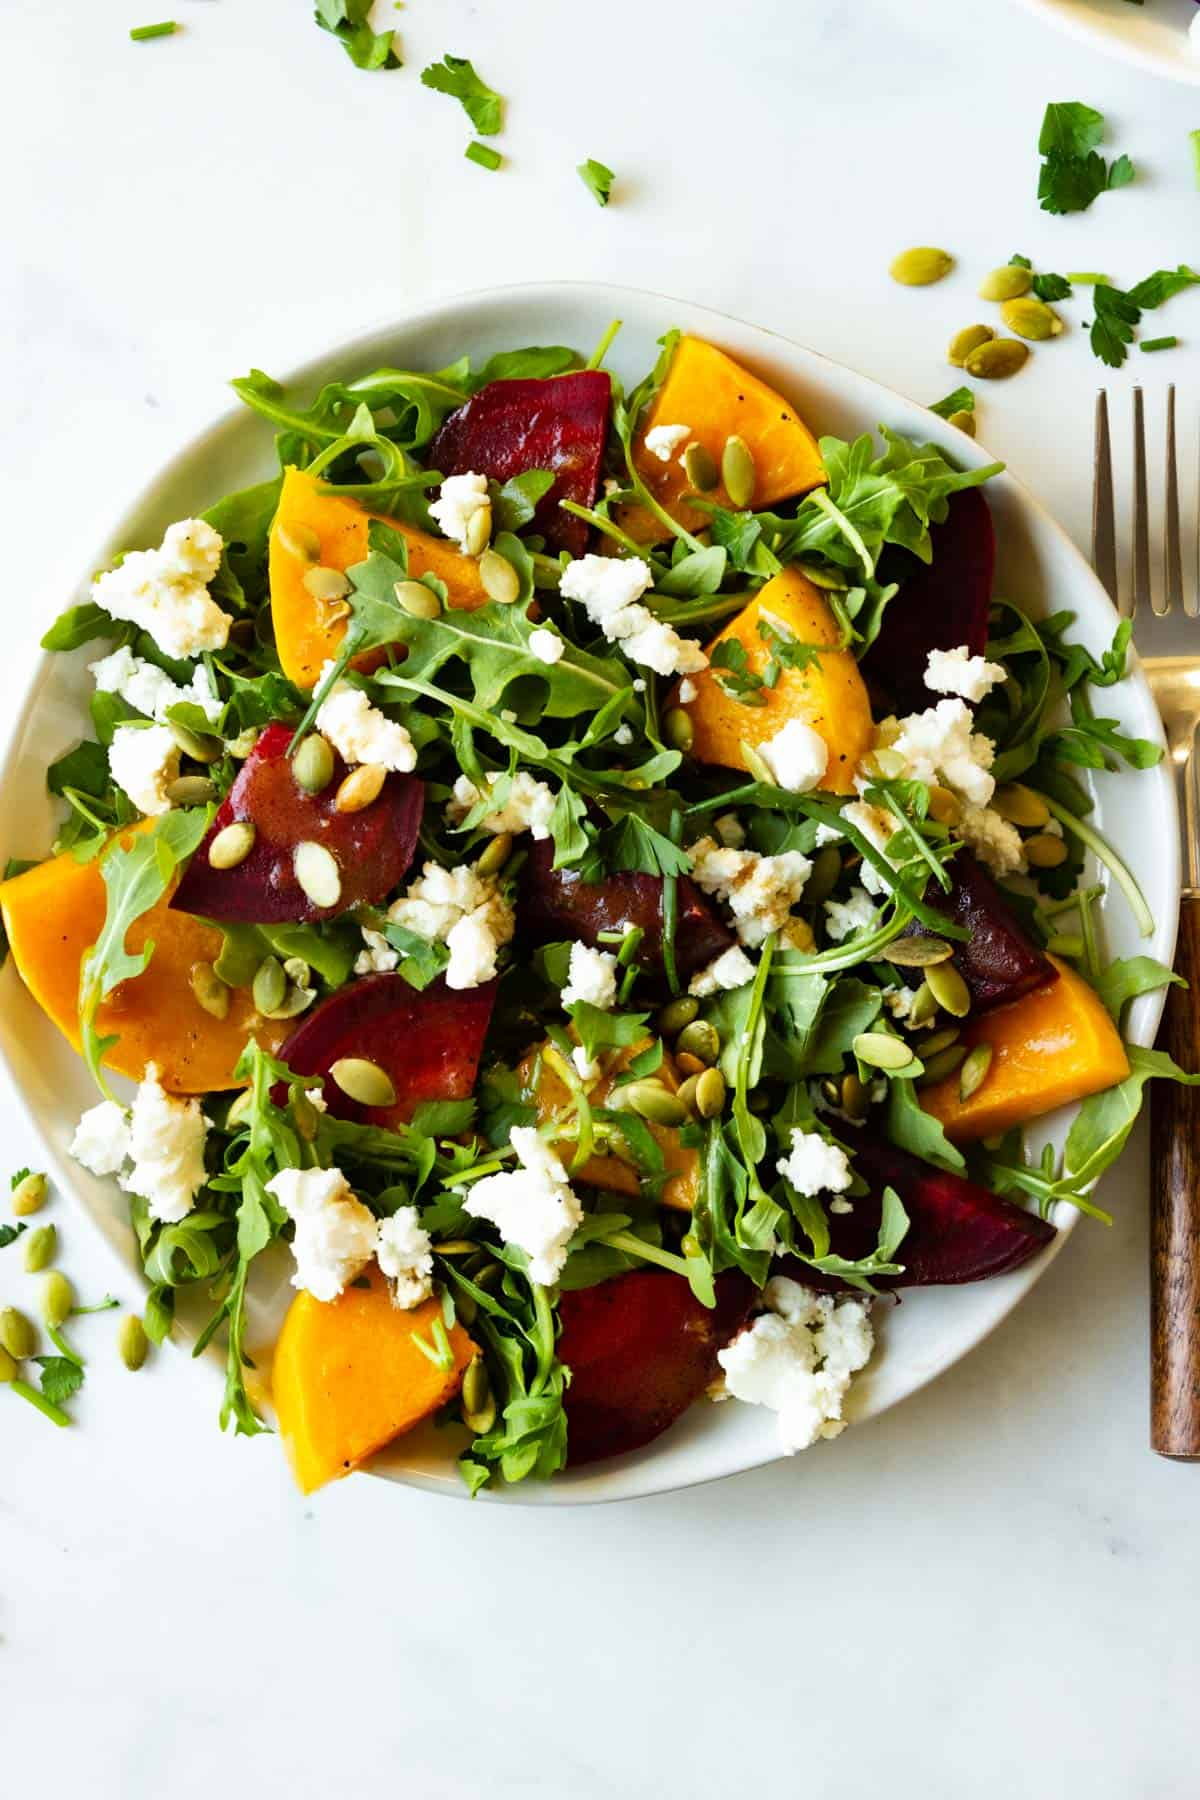 A plate of roasted beet and buttenrut squash salad with a wooden handled spoon resting next to it.